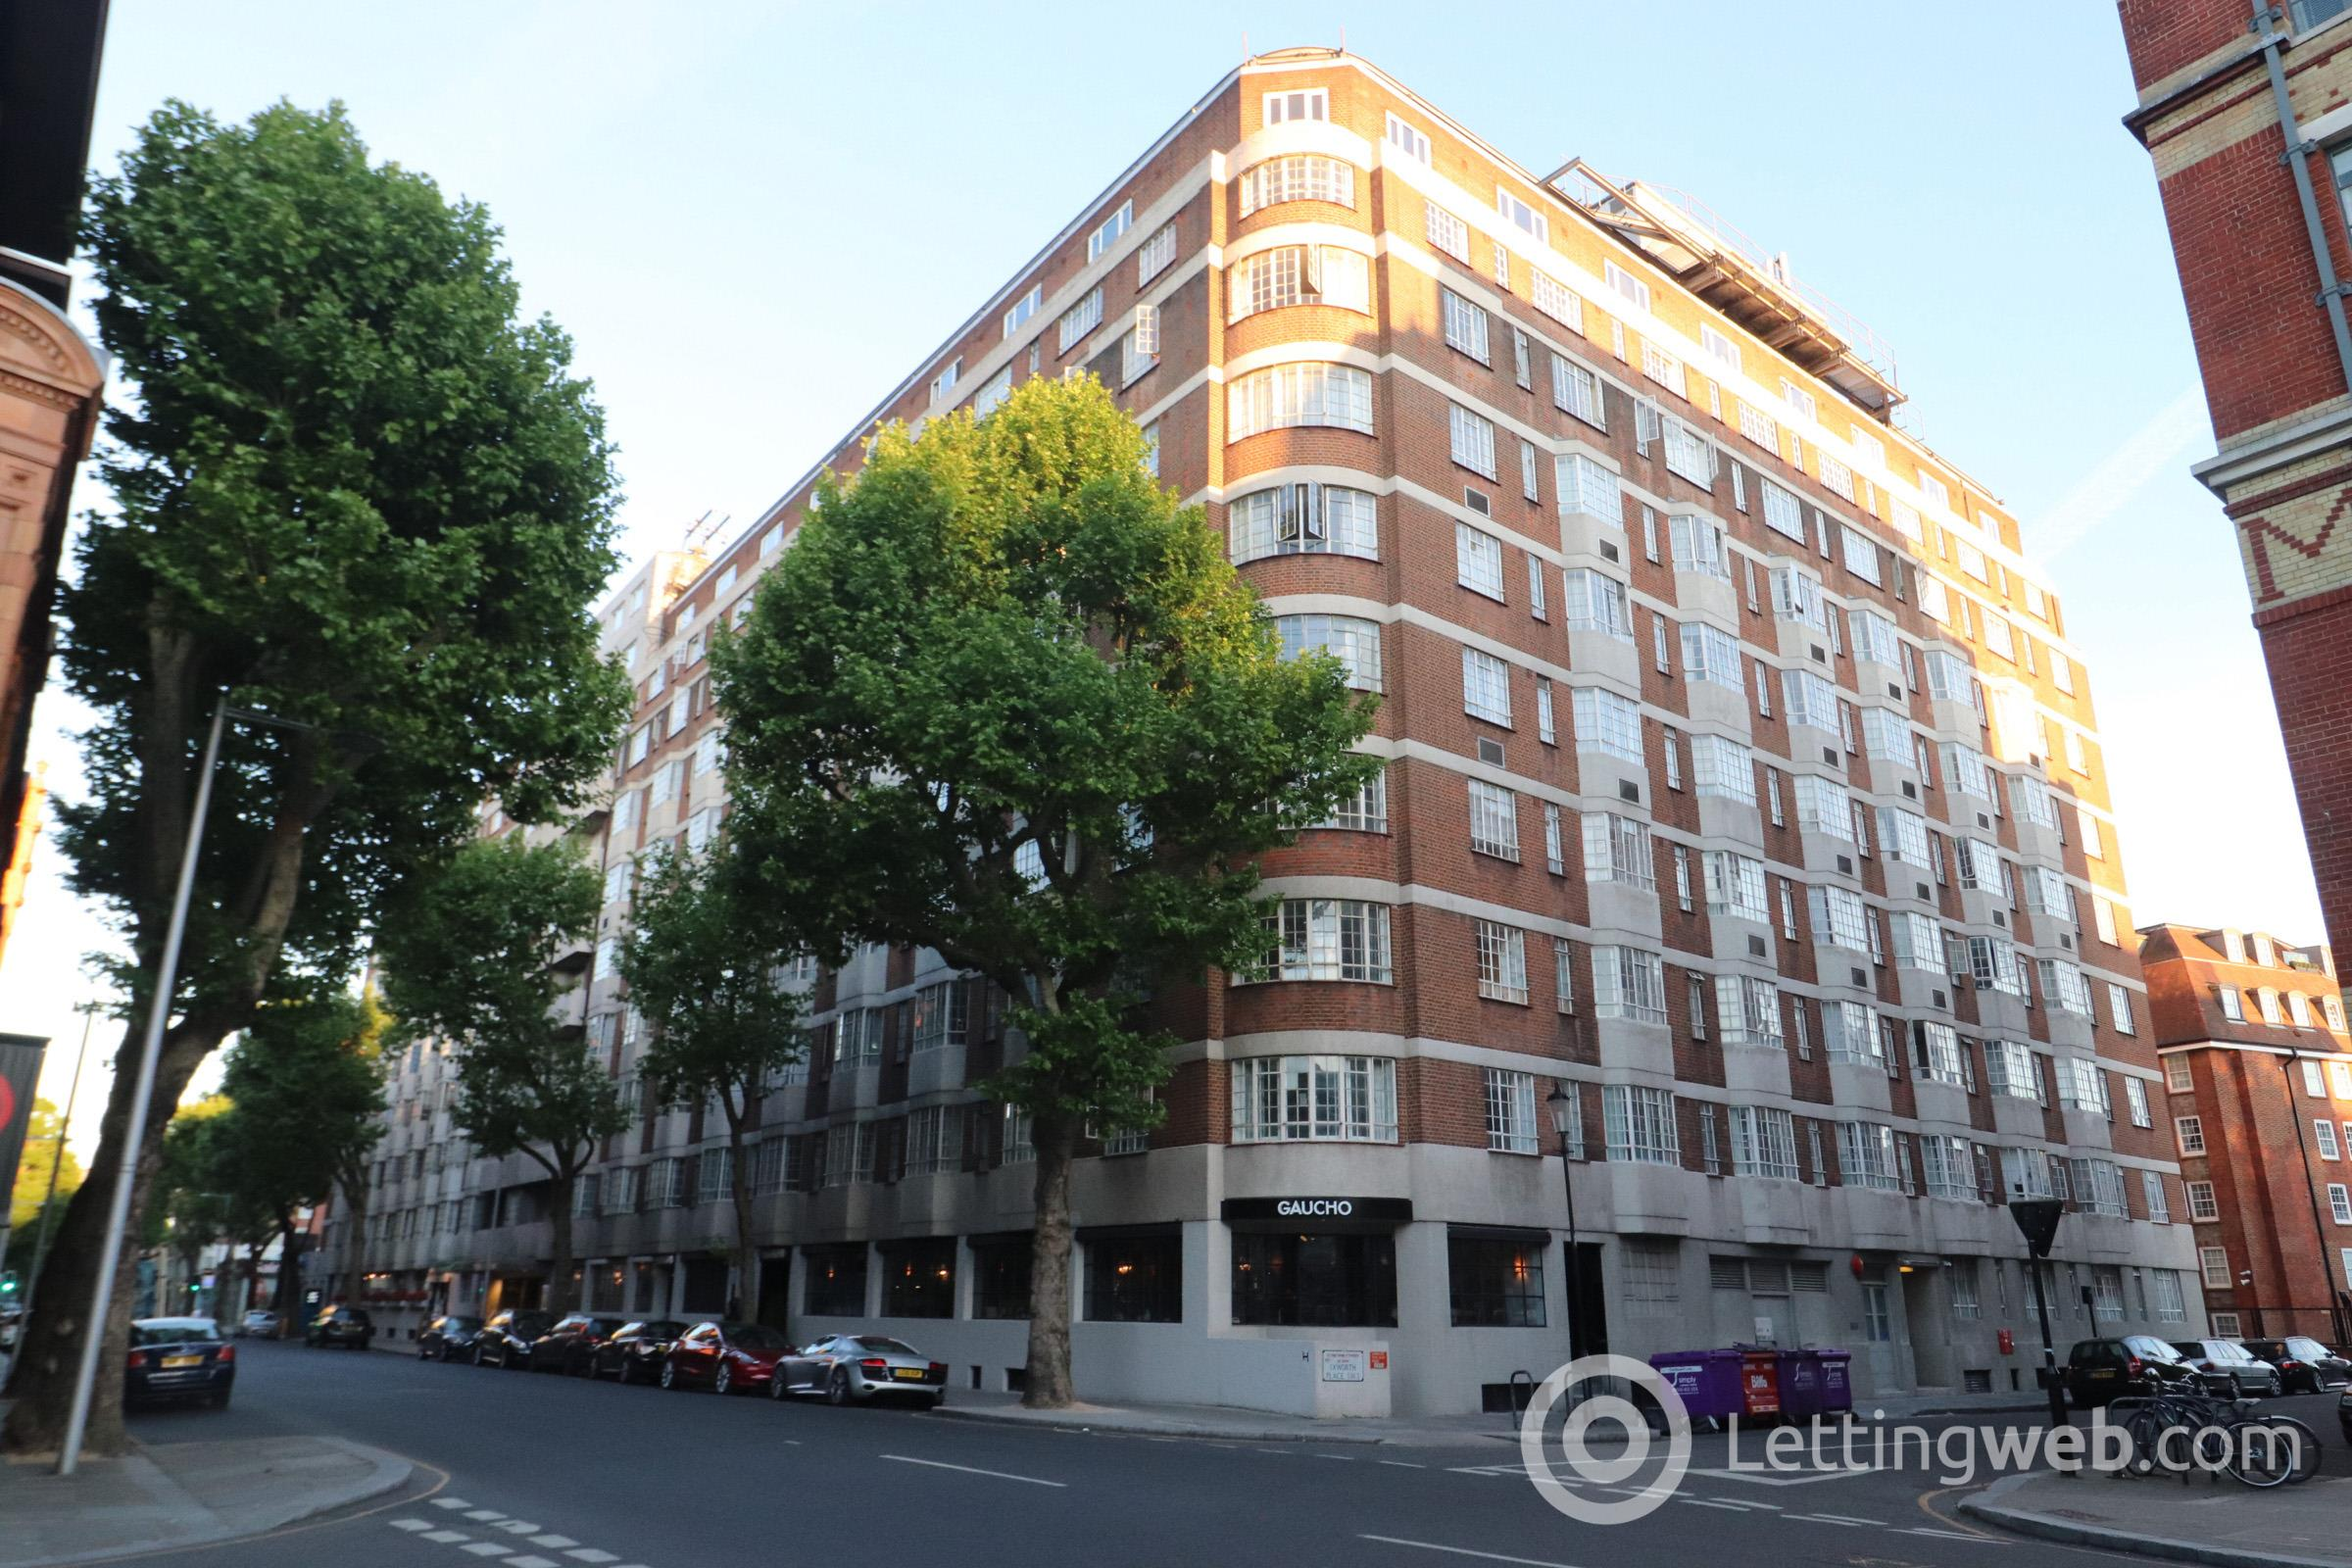 Property to rent in Chelsea Cloisters, Sloane Avenue, London SW3